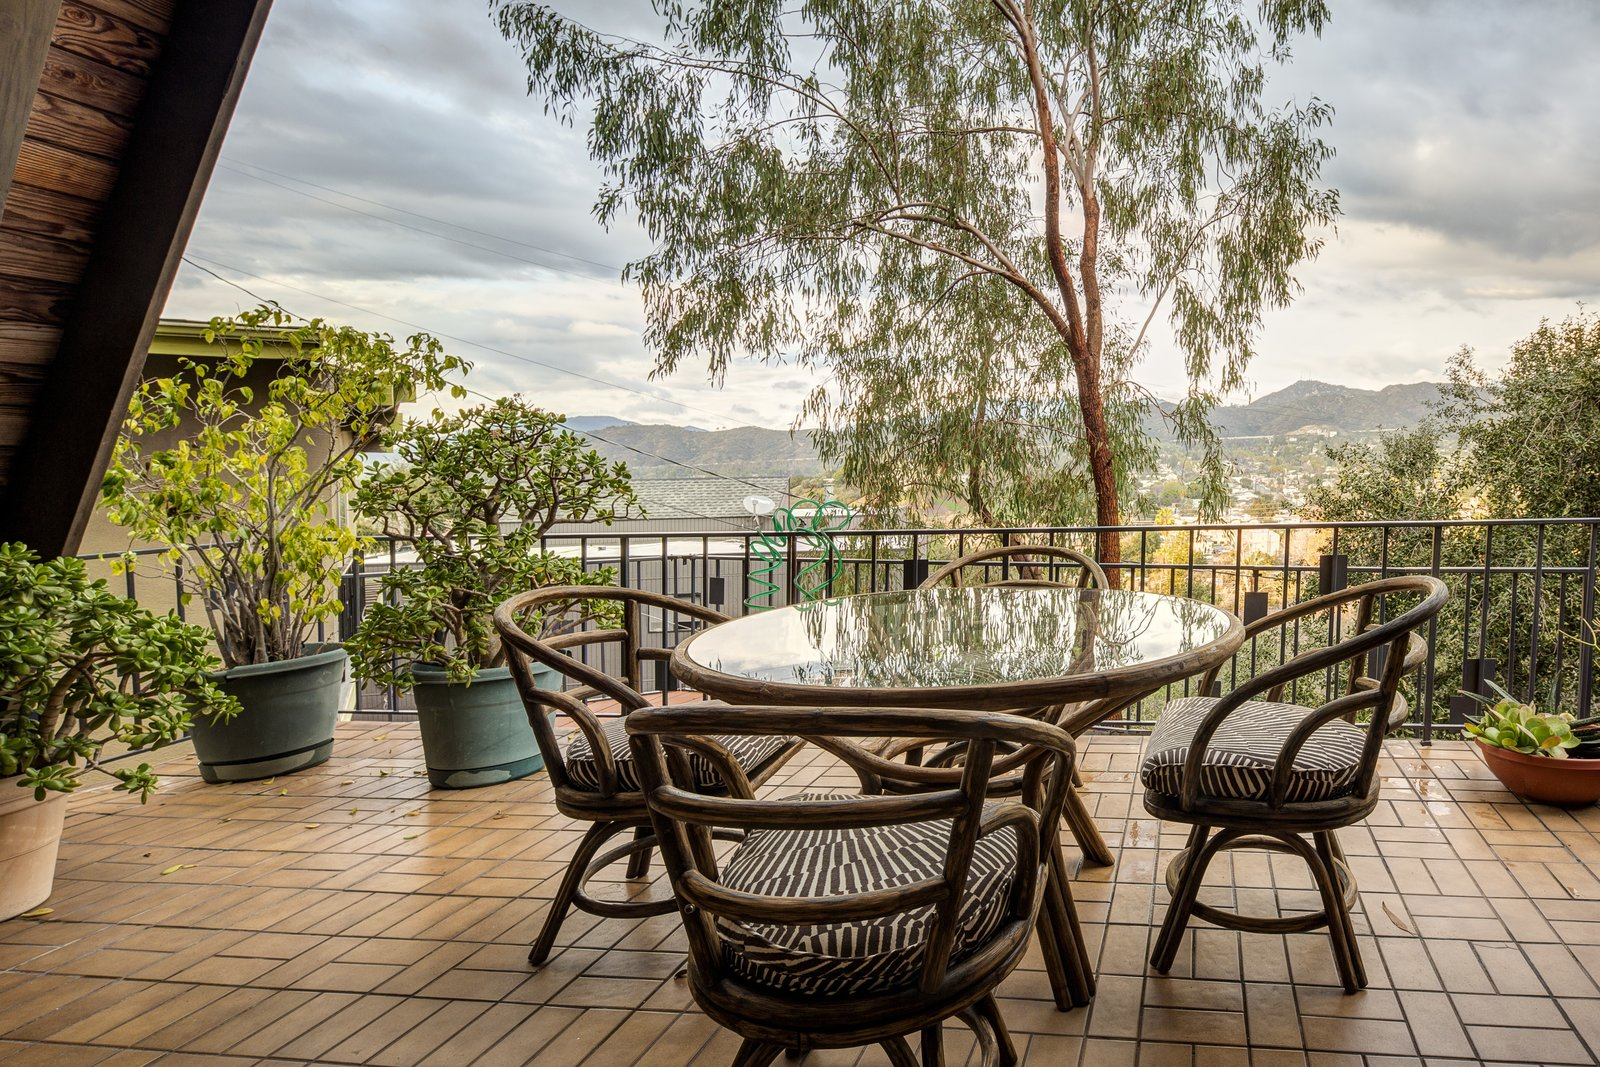 The semi-sheltered terrace allows for outdoor dining with views of the surrounding neighborhood and nearby mountains.  Photo 6 of 10 in A Modified A-Frame Overlooking Los Angeles Starts at $699K